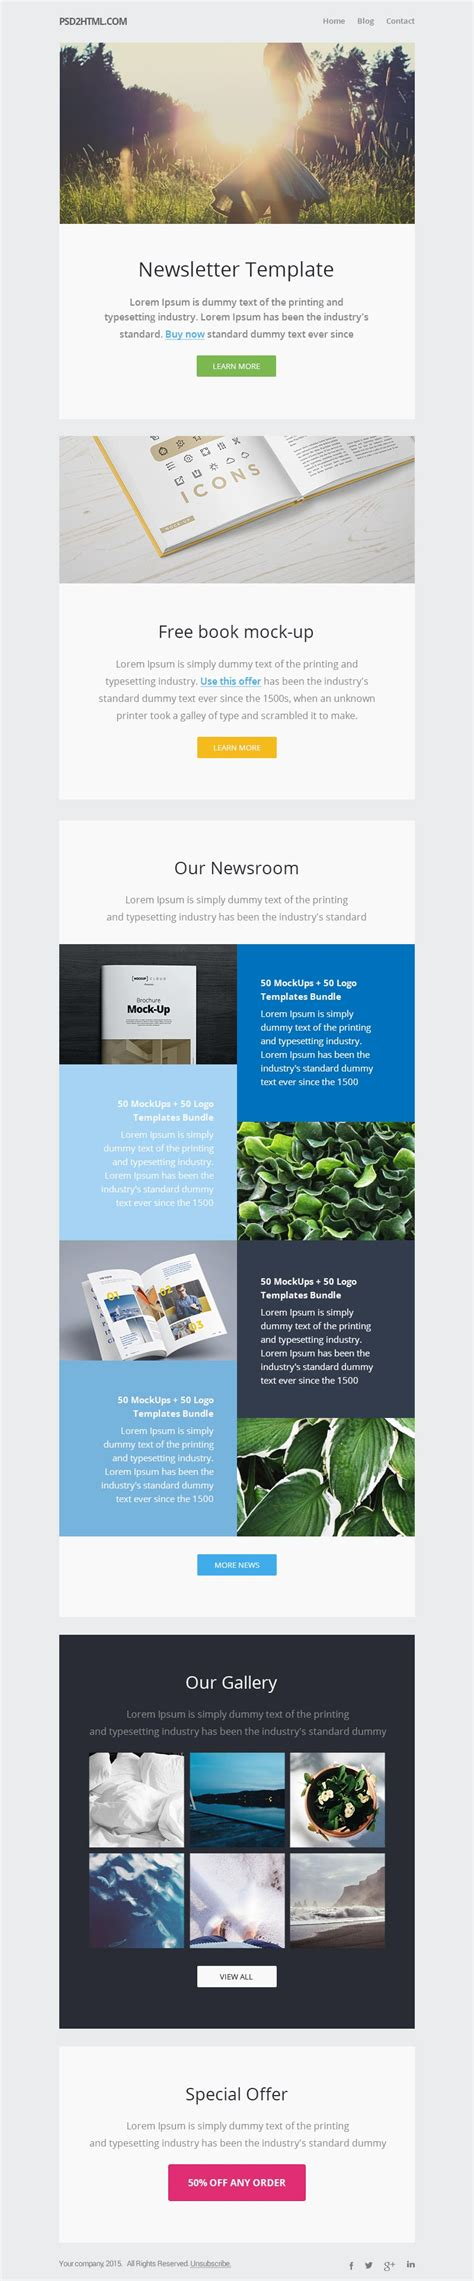 Free Email Newsletter Templates Psd » Css Author. Gantt Chart Powerpoint Template. Graduation Present Ideas For Guys. Wedding Reception Card. Consulting Contract Template Word. Post Music On Instagram. Creative Bake Sale Ideas. Class Of 2018 Graduation Date. Employee Training Checklist Template